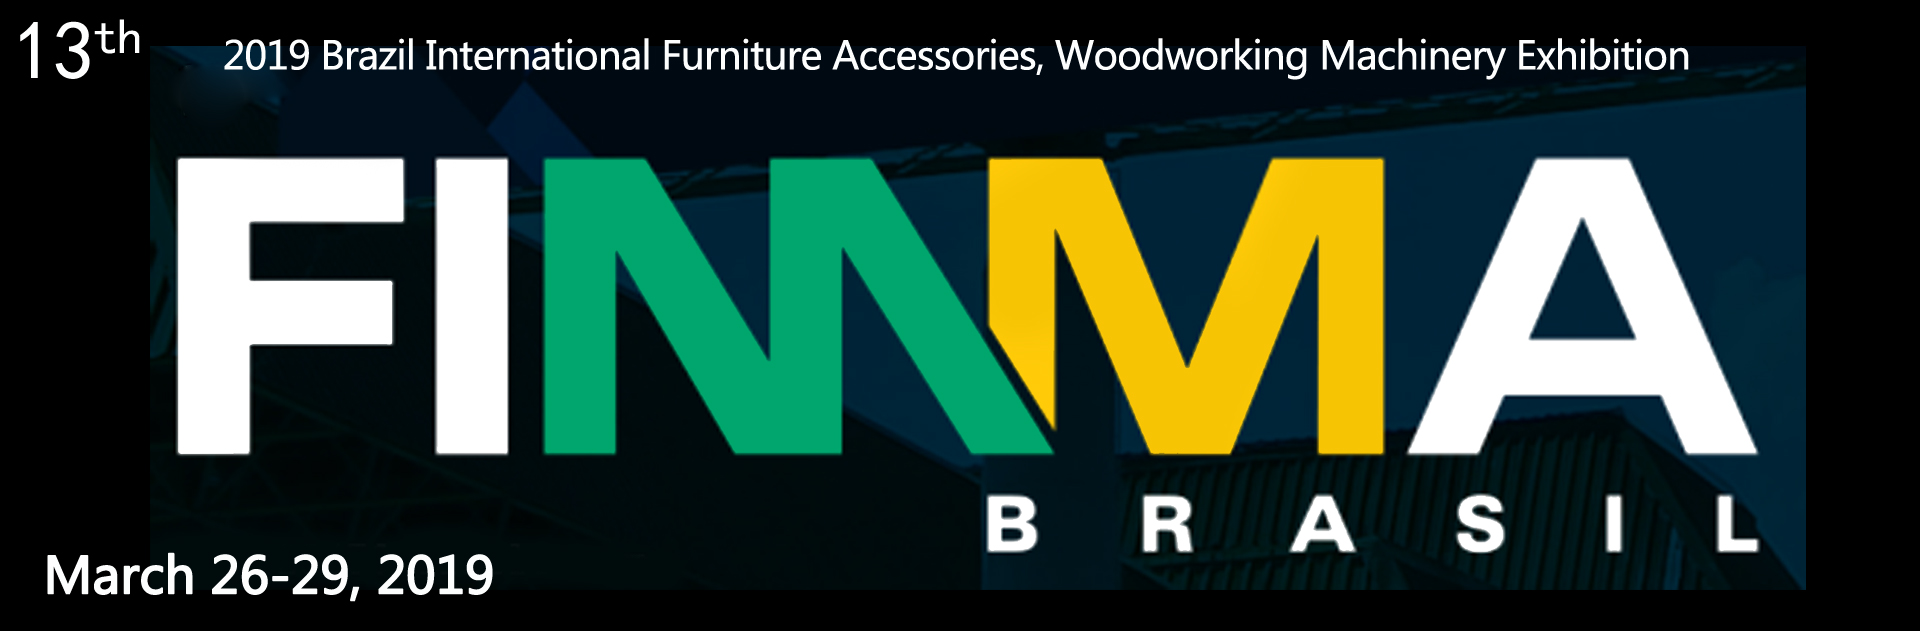 2019-Brazil-Woodworking-Machinery-Exhibition